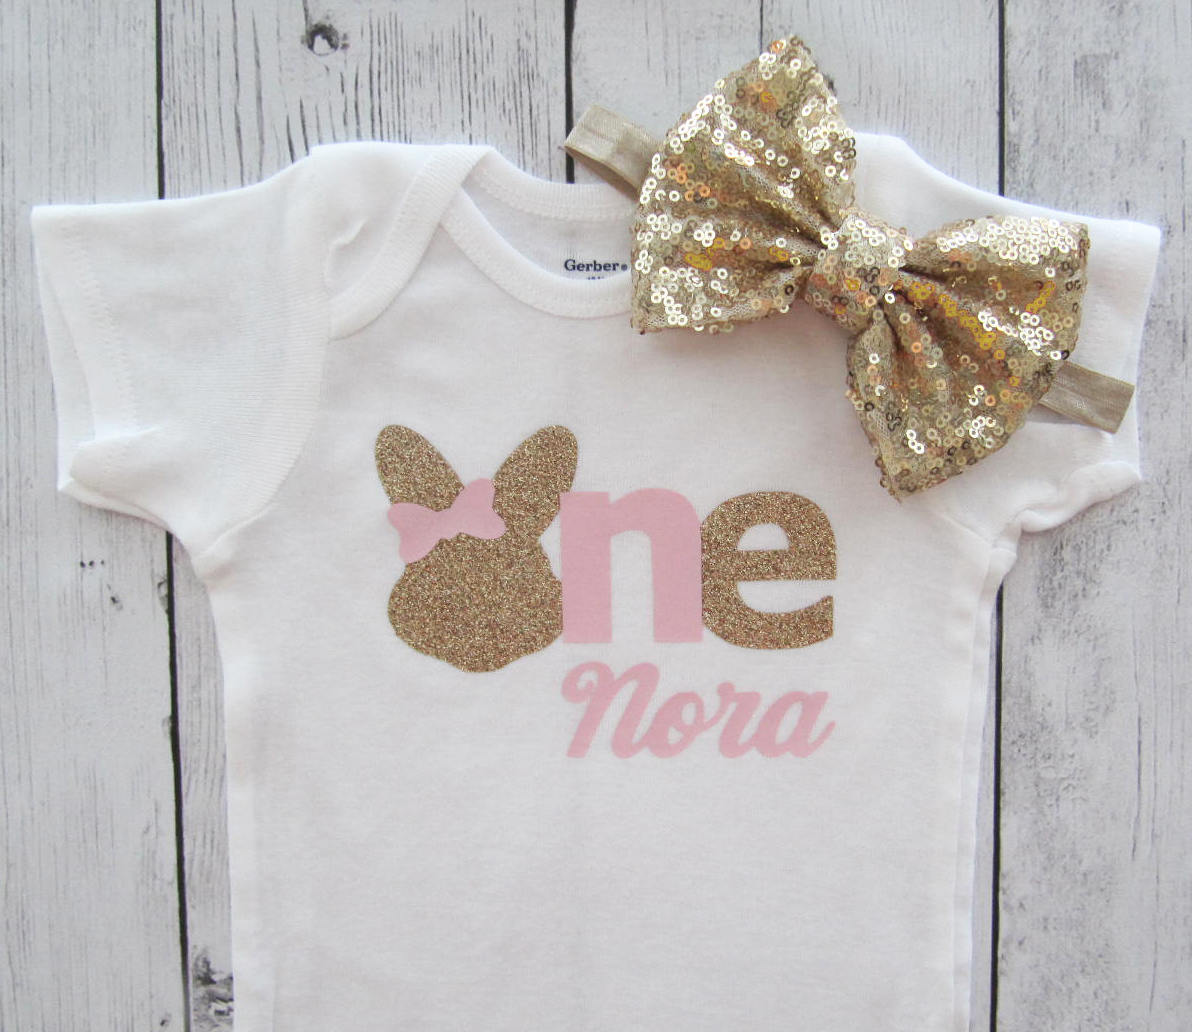 Bunny First Birthday Onesie in pink and gold- some bunny is one, bunny first birthday shirt, bunny birthday outfit girl, bunny 1st birthday